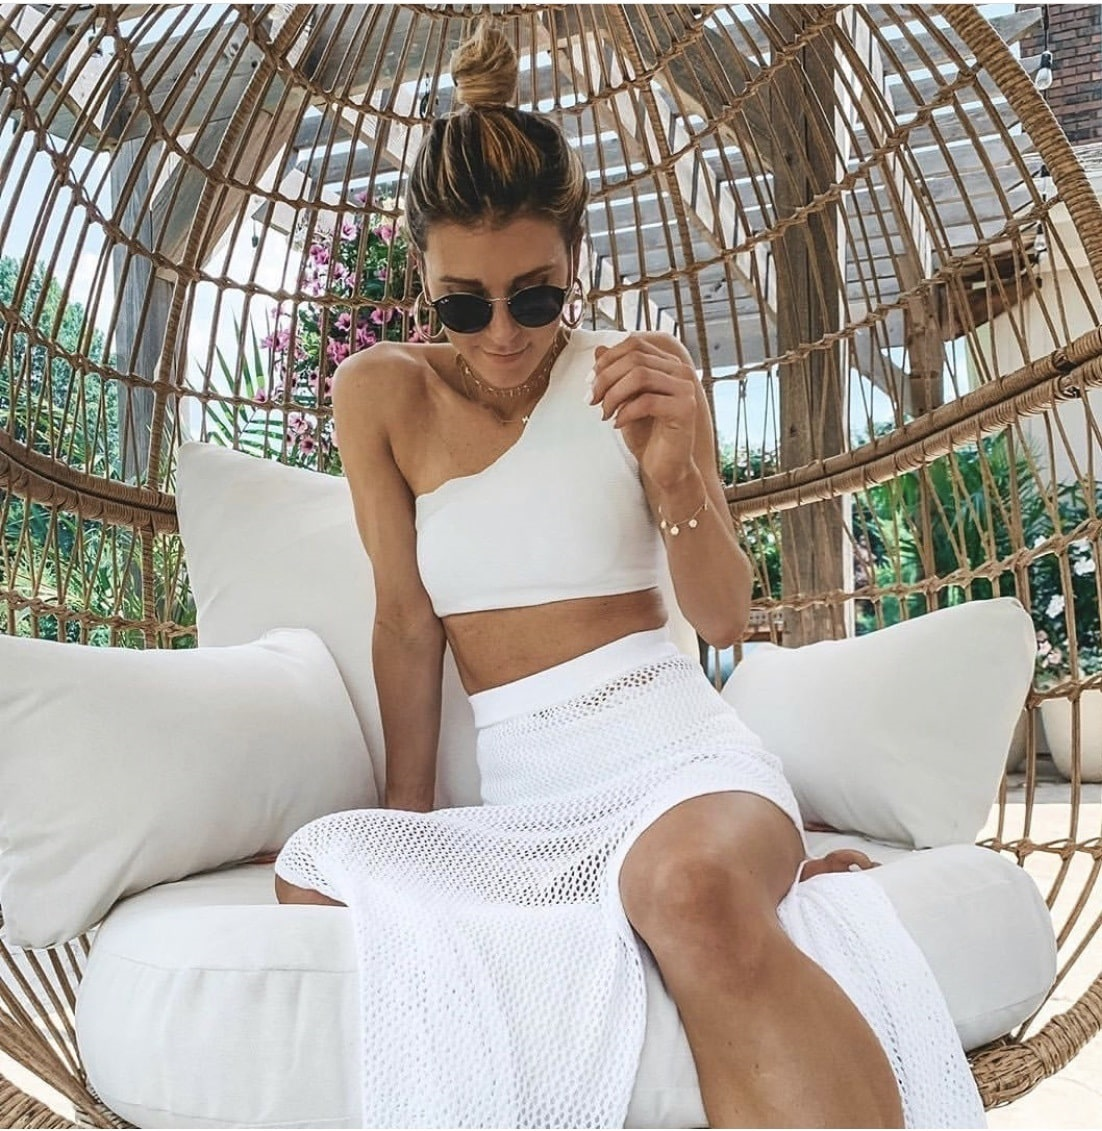 Launch into Labor Day…Stylish Looks for a Weekend Getaway, labor day weekend outfit, all white beach outfit